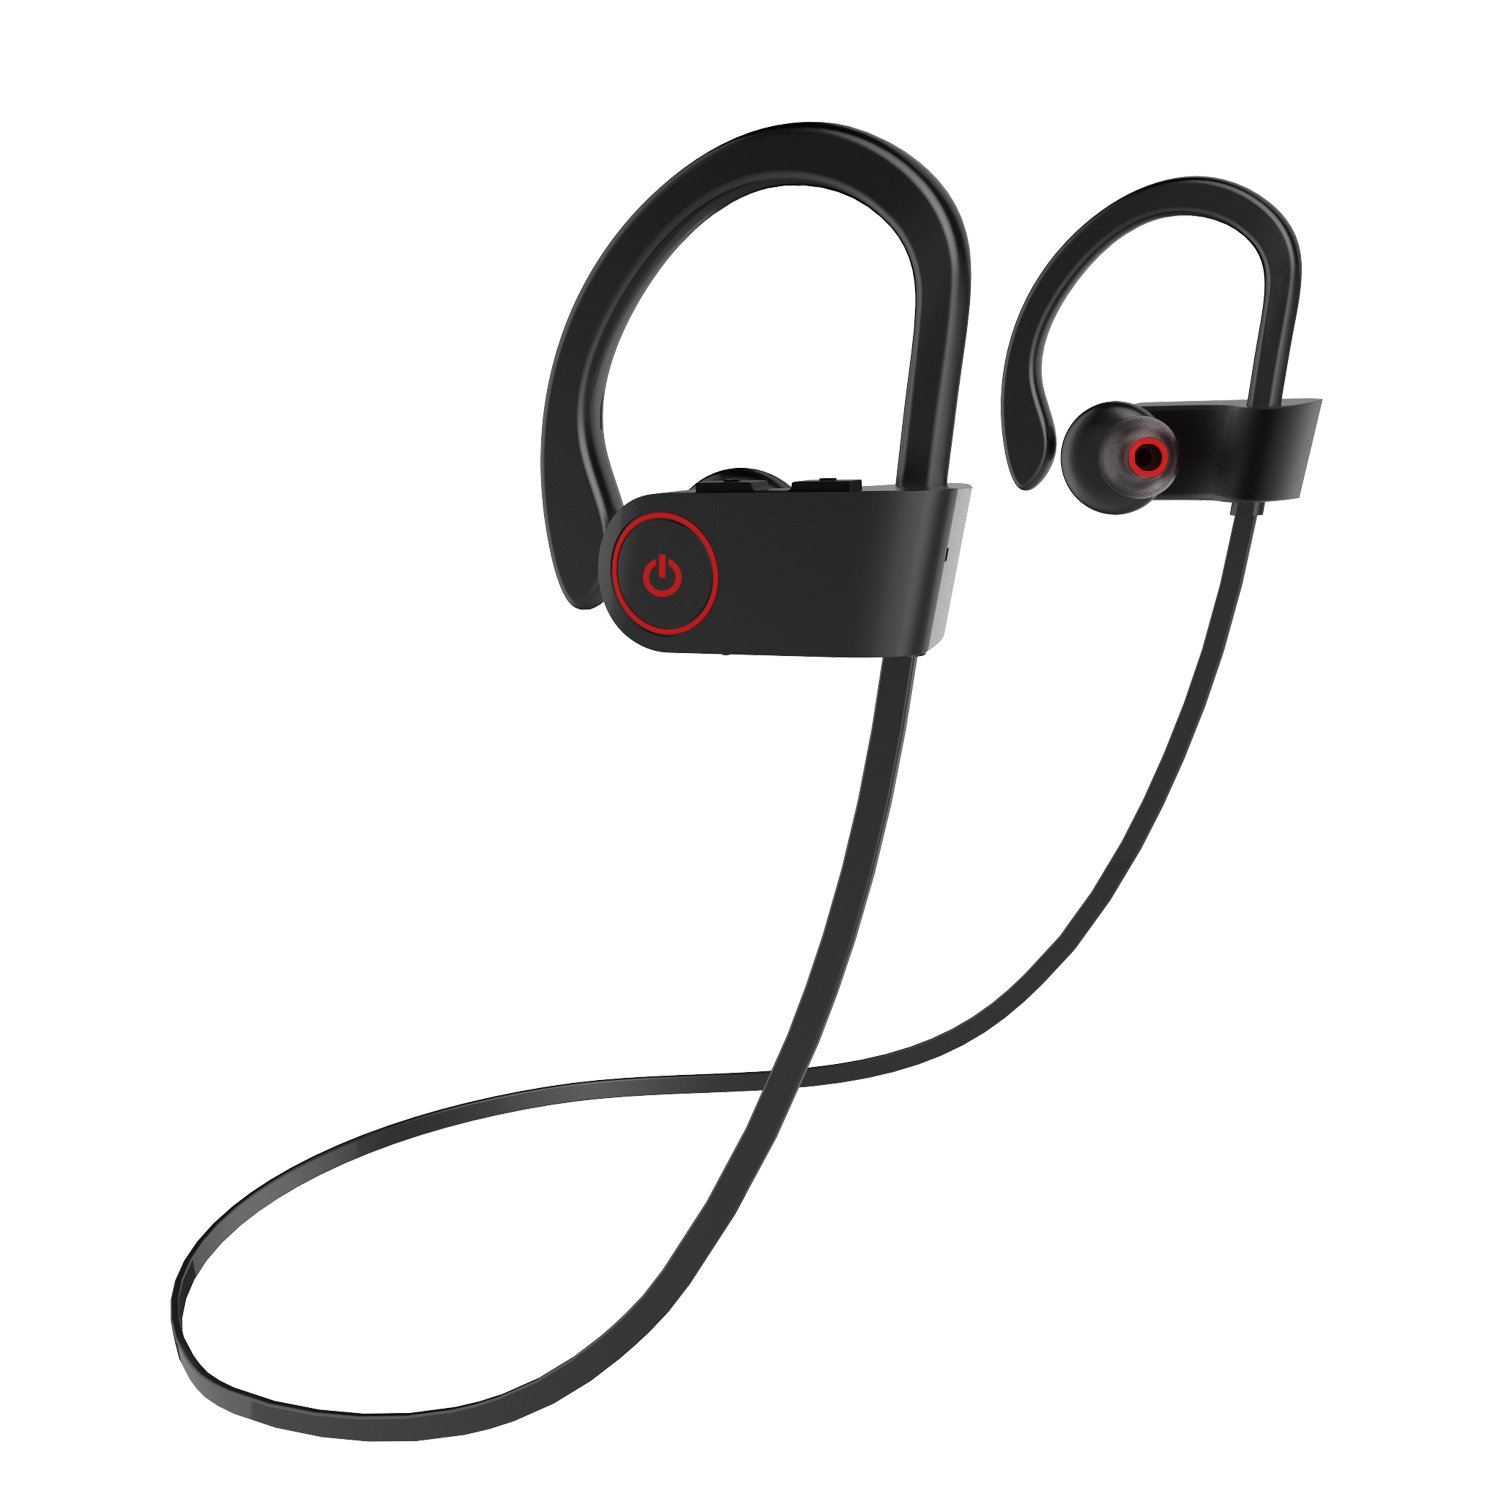 Safsou Bluetooth Headphones Compatible Best Wireless Sports Earphones w/Mic IPX7 Waterproof HD Stereo Sweatproof in Ear Earbuds for Gym Running Workout 8 Hour Battery Noise Cancelling U8 Headsets